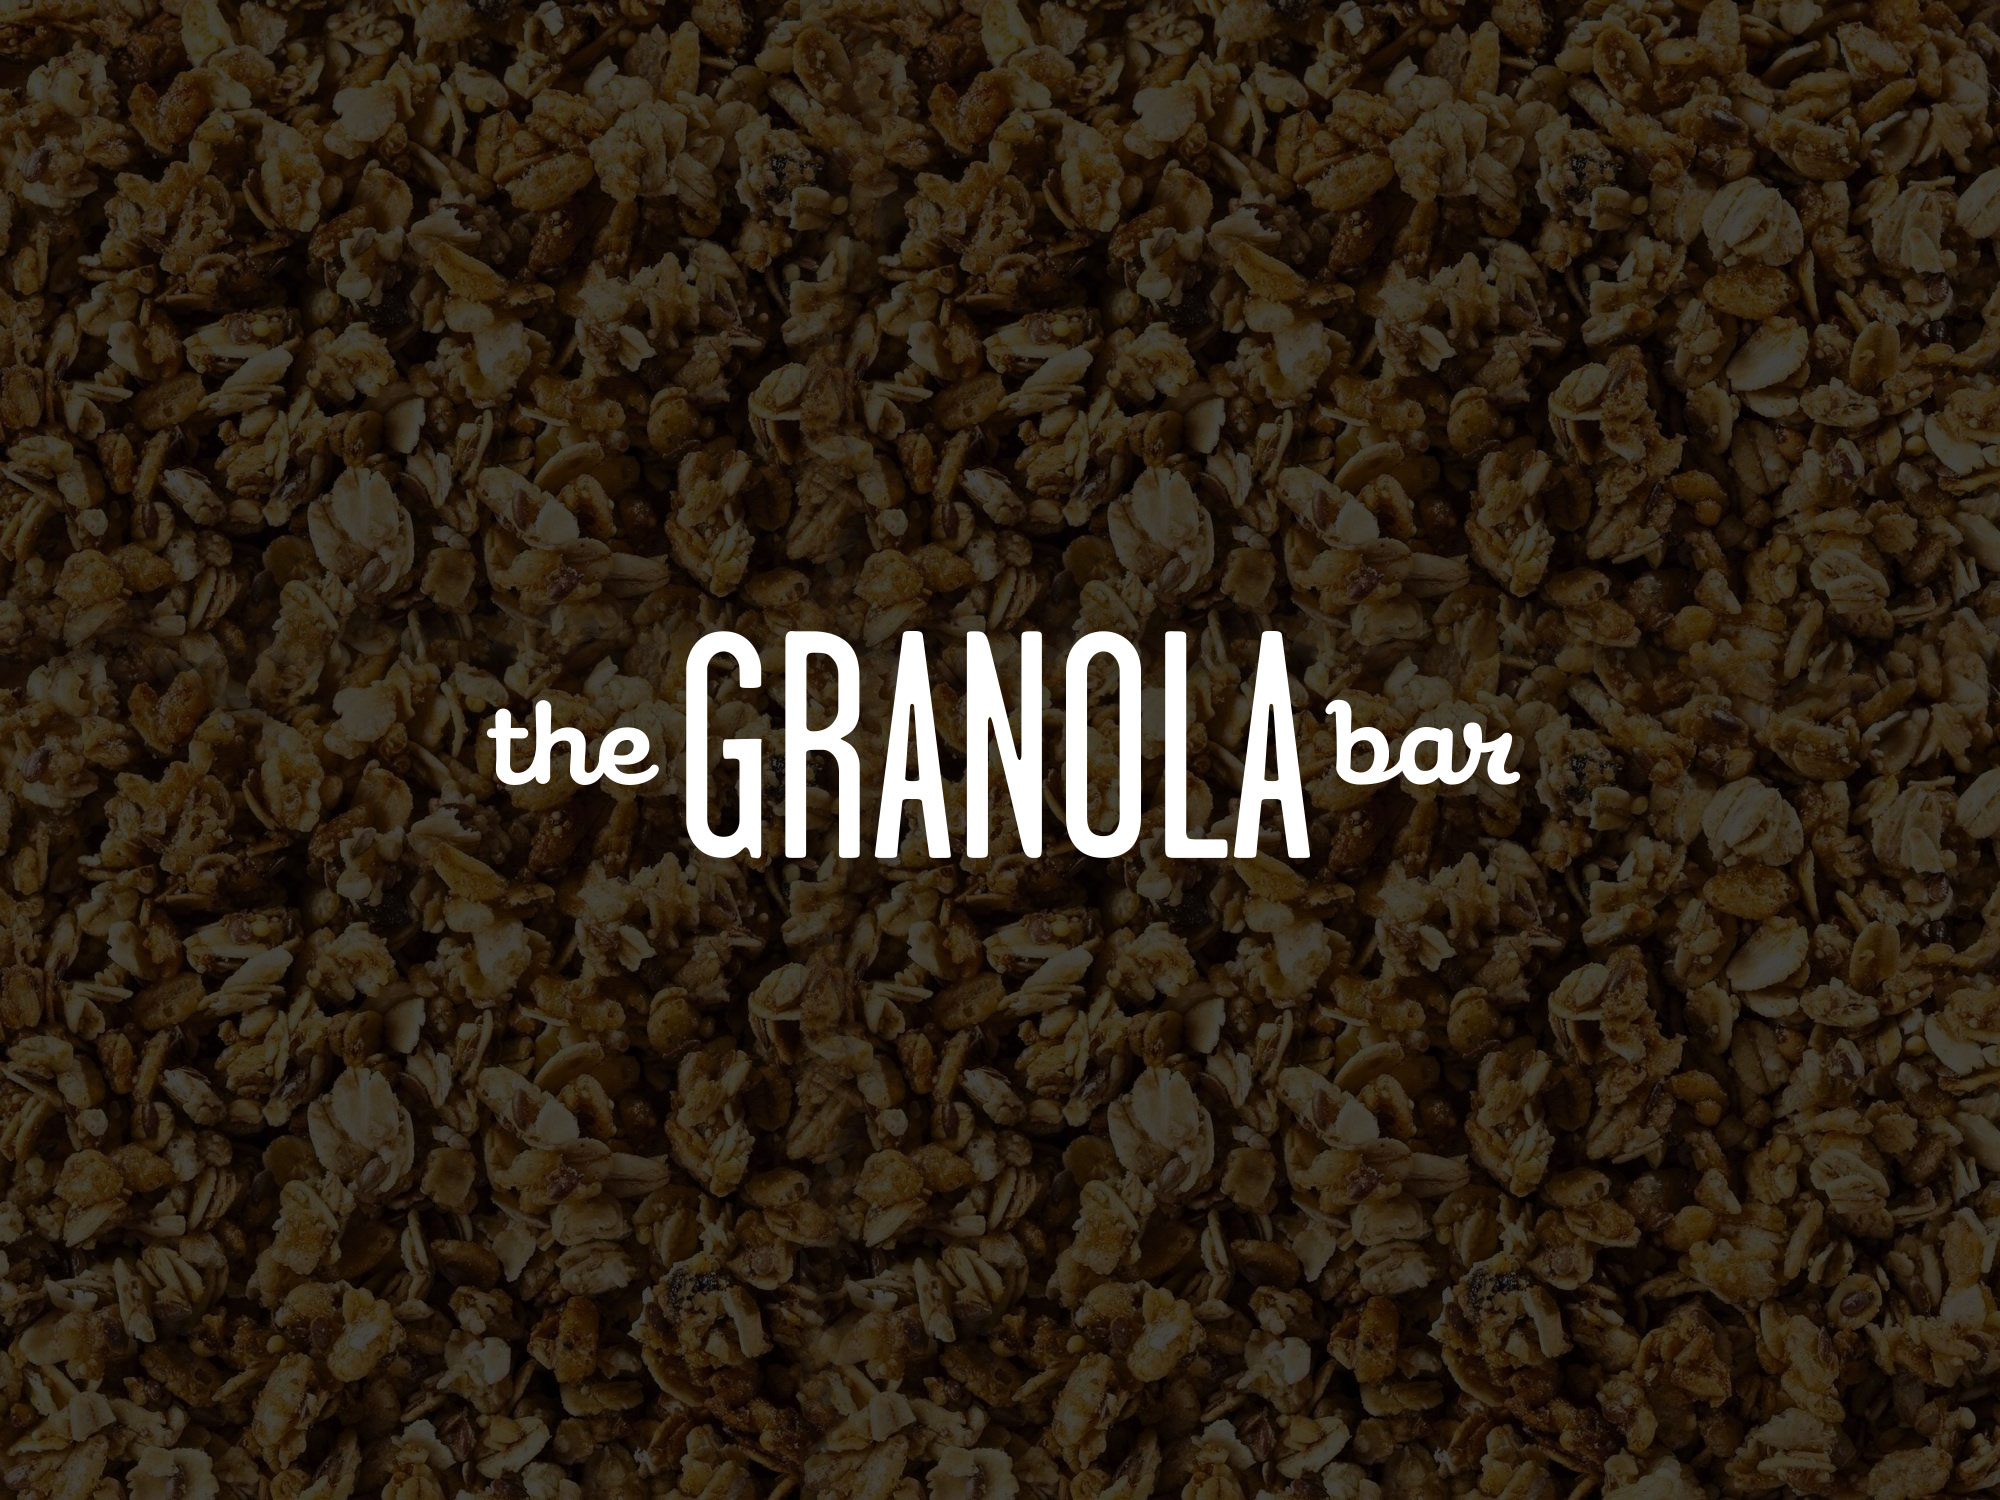 solmarkcreative-thegranolabar.jpg